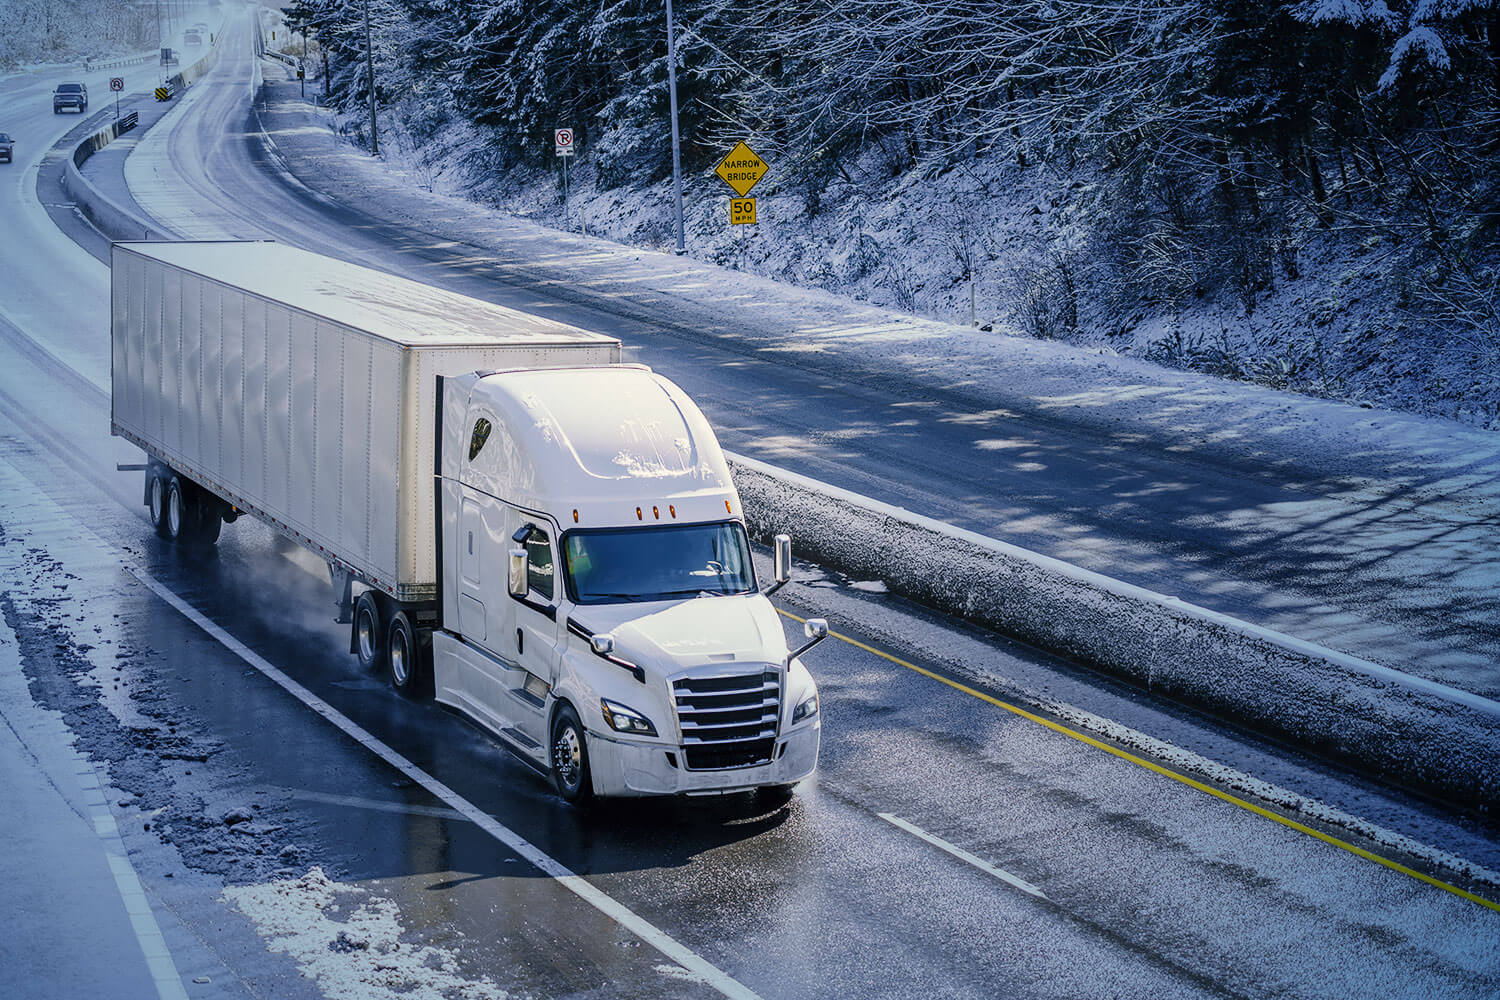 Heading Into Winter: Keeping Drivers Safe On The Road